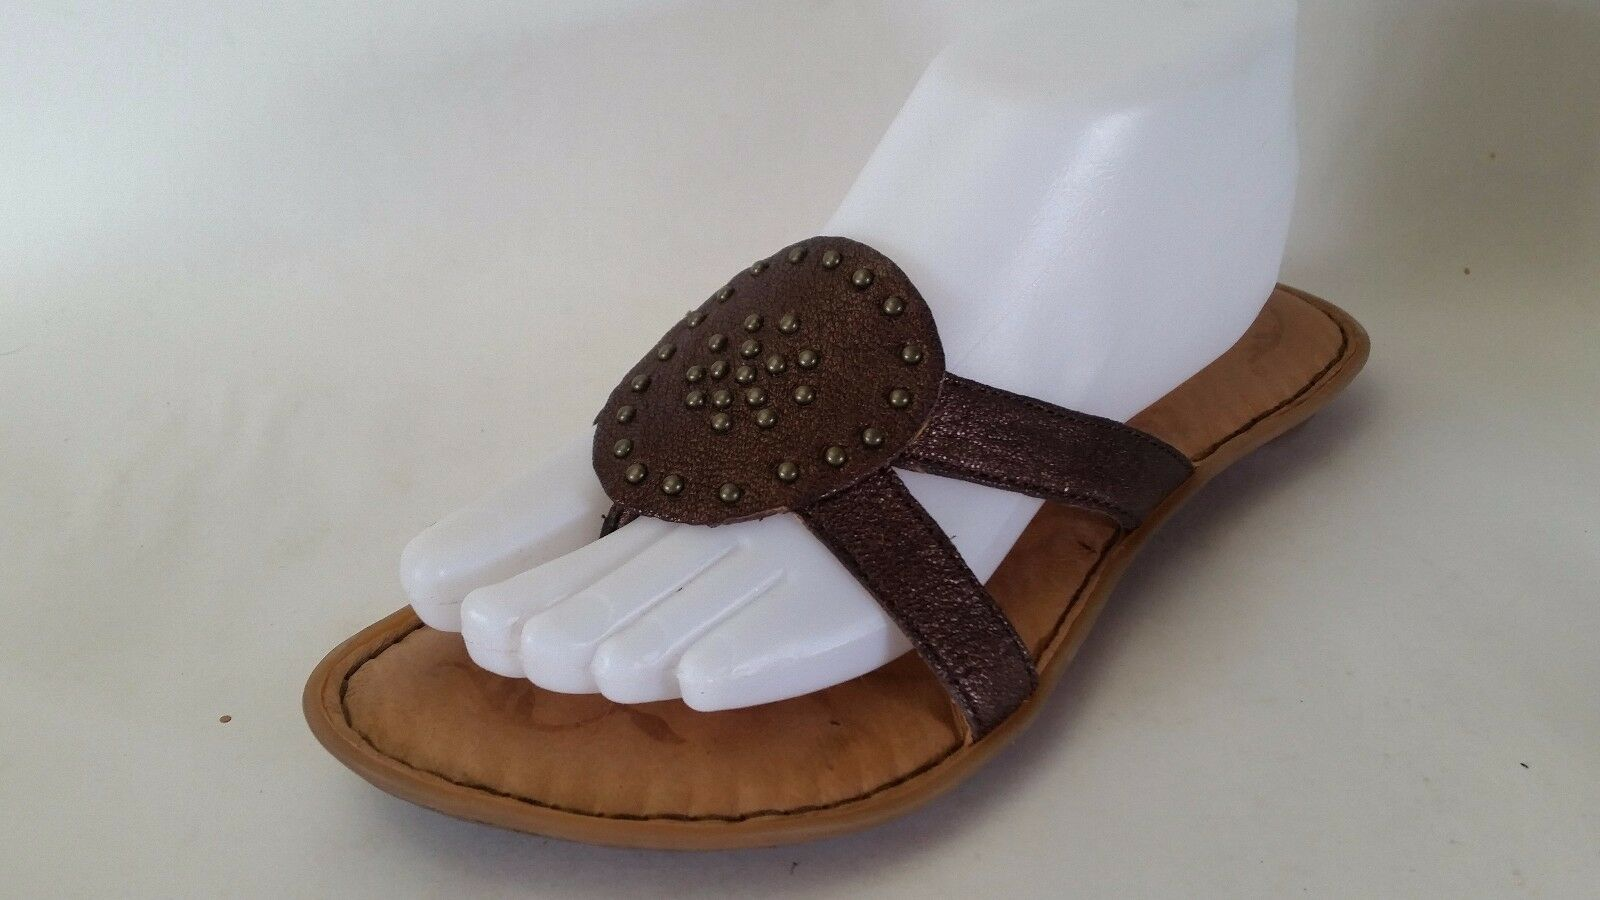 Born Brown Leather Thong Sandals 8 M Studded Flats Flip Flops Slip On shoes Work